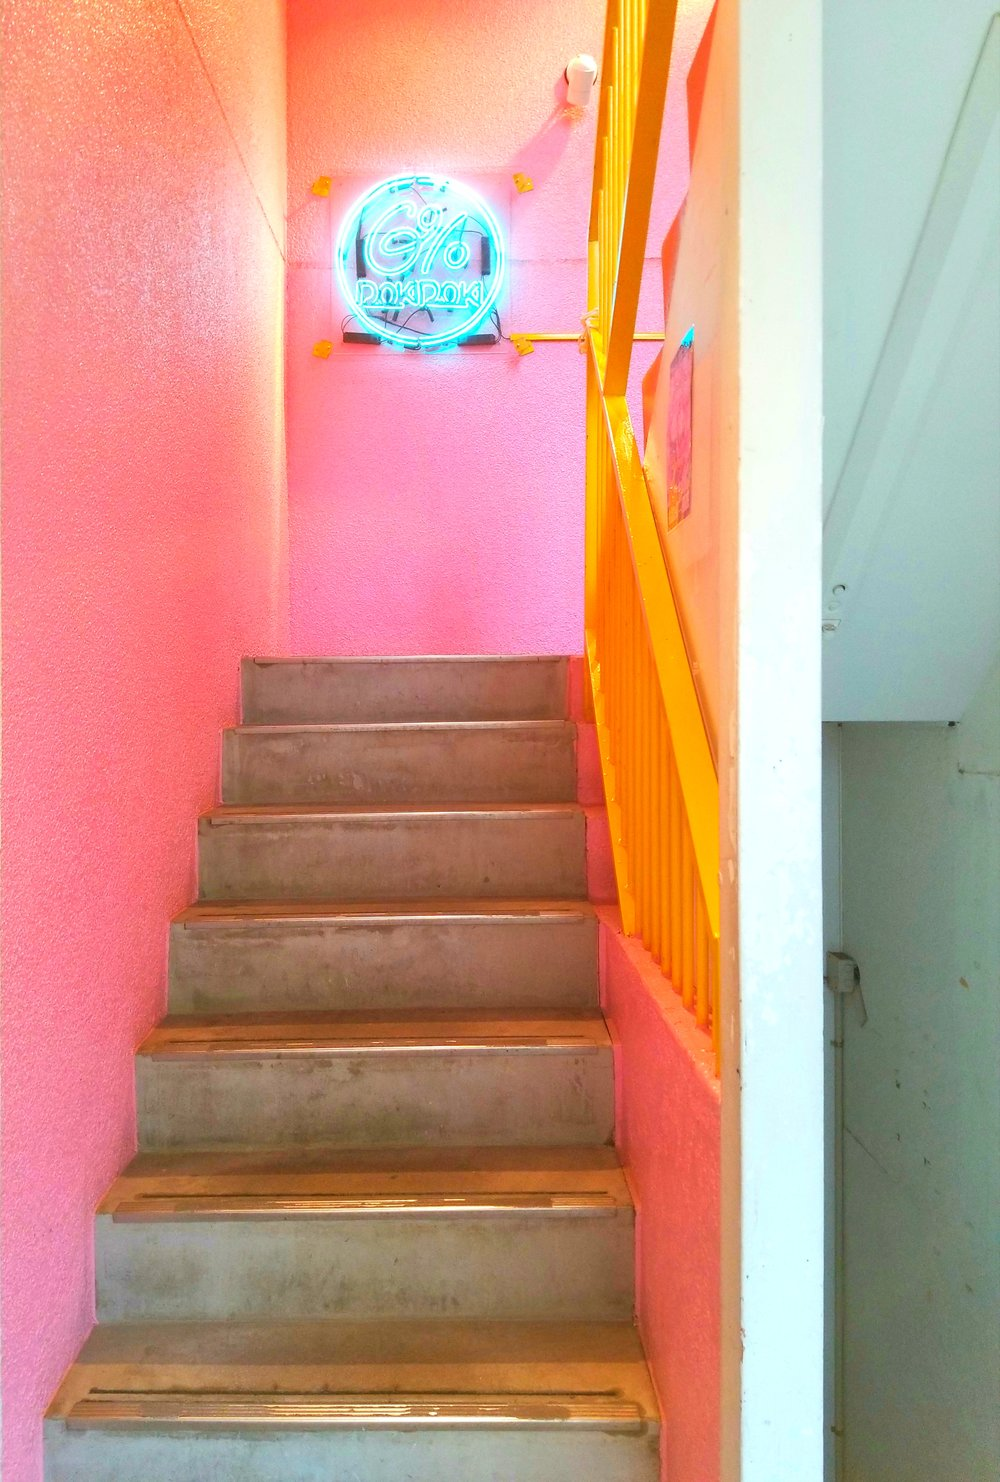 uprooted-traveler-pink-stairwell-harajuku-what-to-do-in-tokyo.jpg